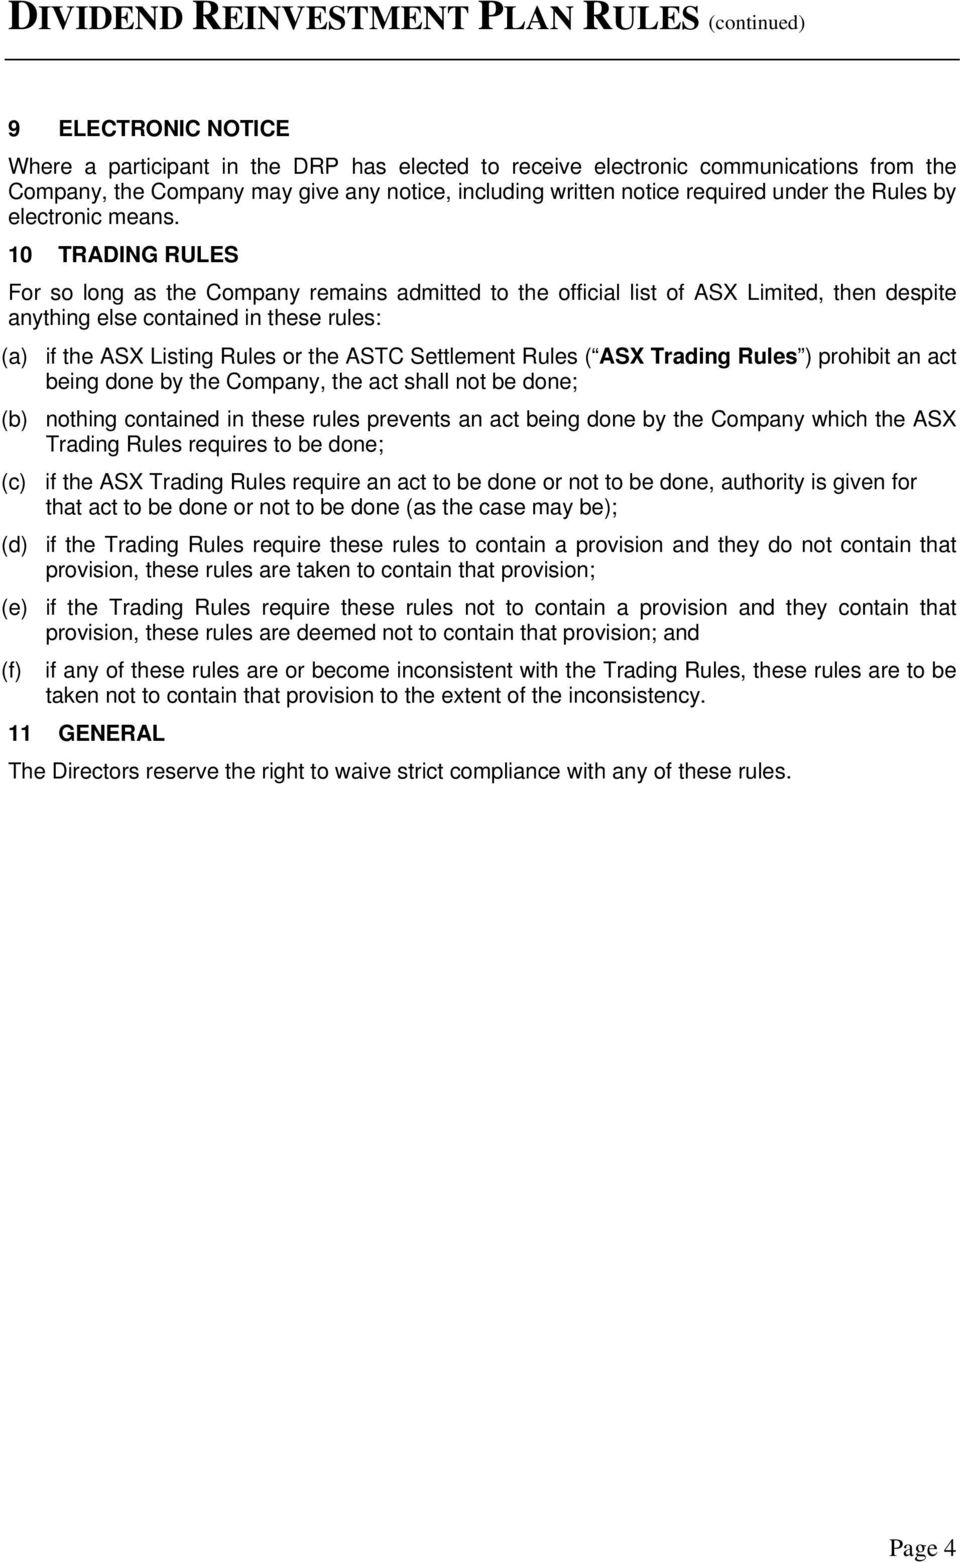 10 TRADING RULES For so long as the Company remains admitted to the official list of ASX Limited, then despite anything else contained in these rules: (a) if the ASX Listing Rules or the ASTC